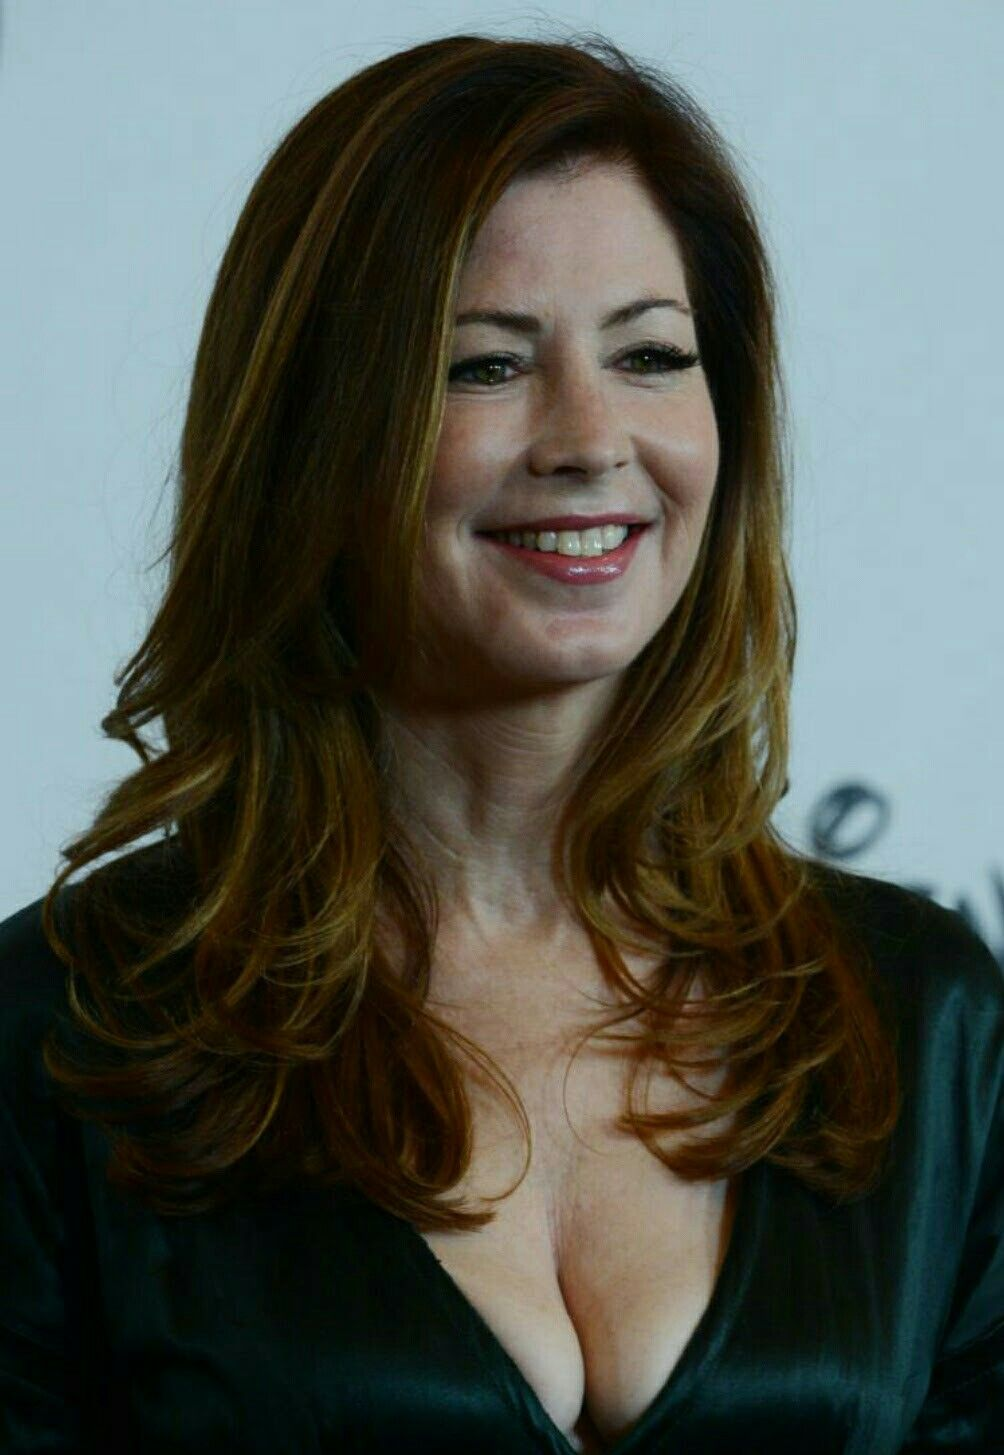 Dana Delany nude (83 photos), Pussy, Cleavage, Twitter, swimsuit 2019